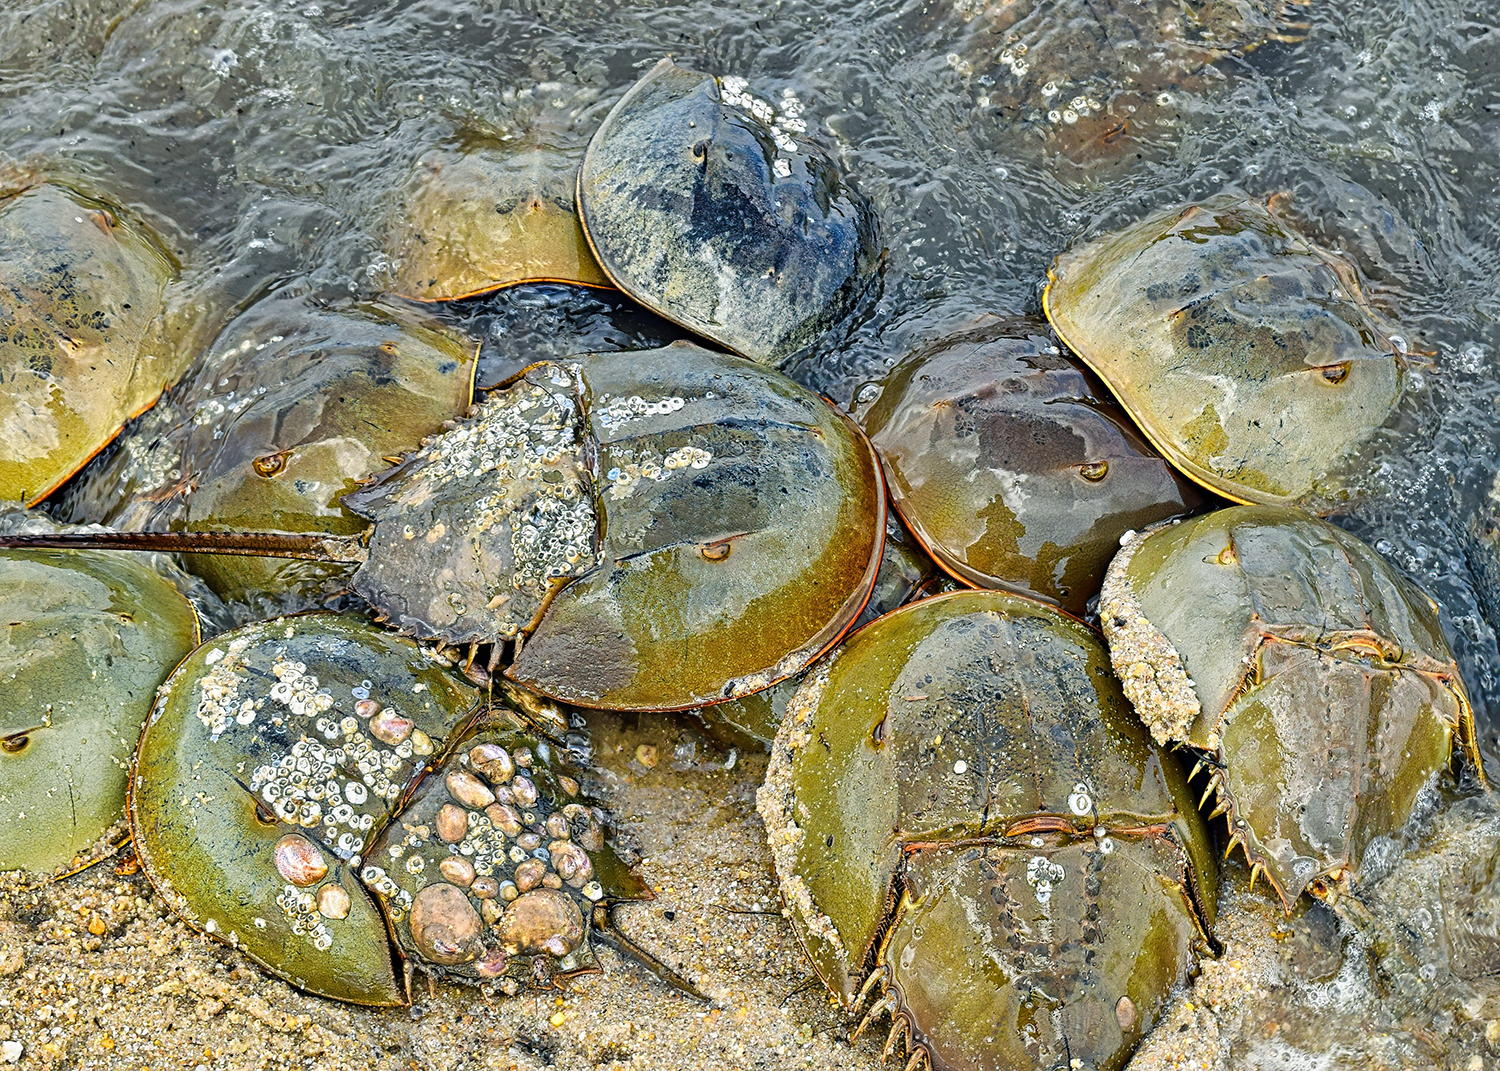 A host of organisms, such as barnacles, marine snails, and anemones, reside on horseshoe crab shells. Photo by Chris Engel